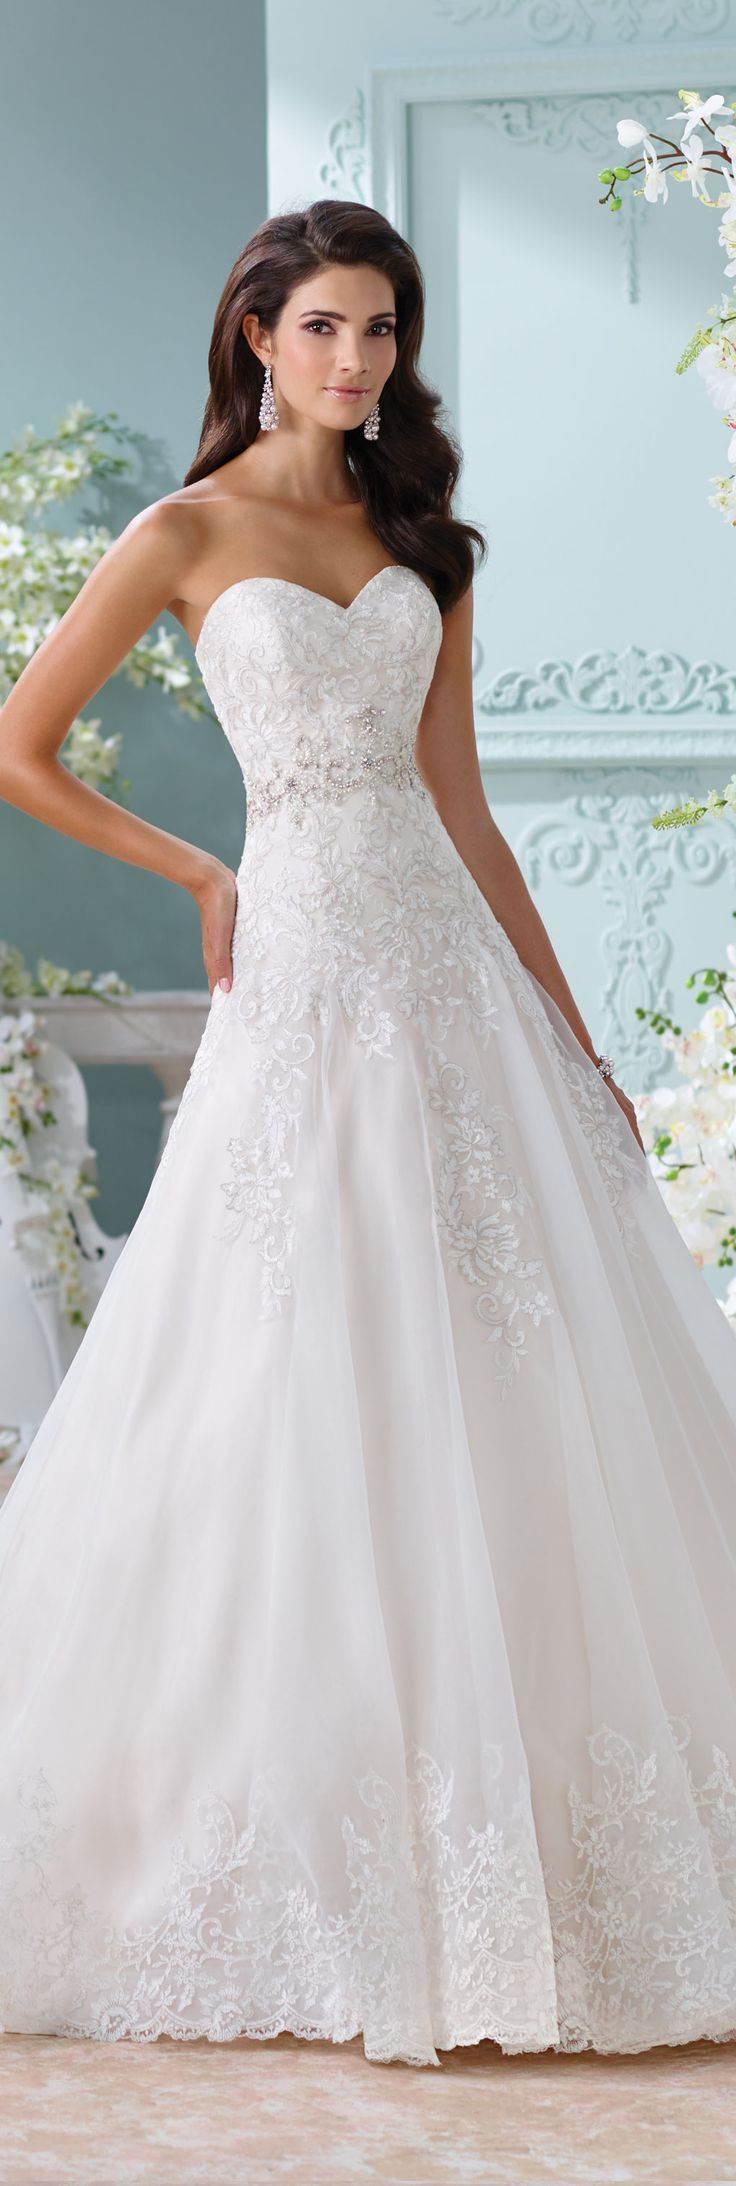 Wedding dresses for slim figures   best Wedding dresses images on Pinterest